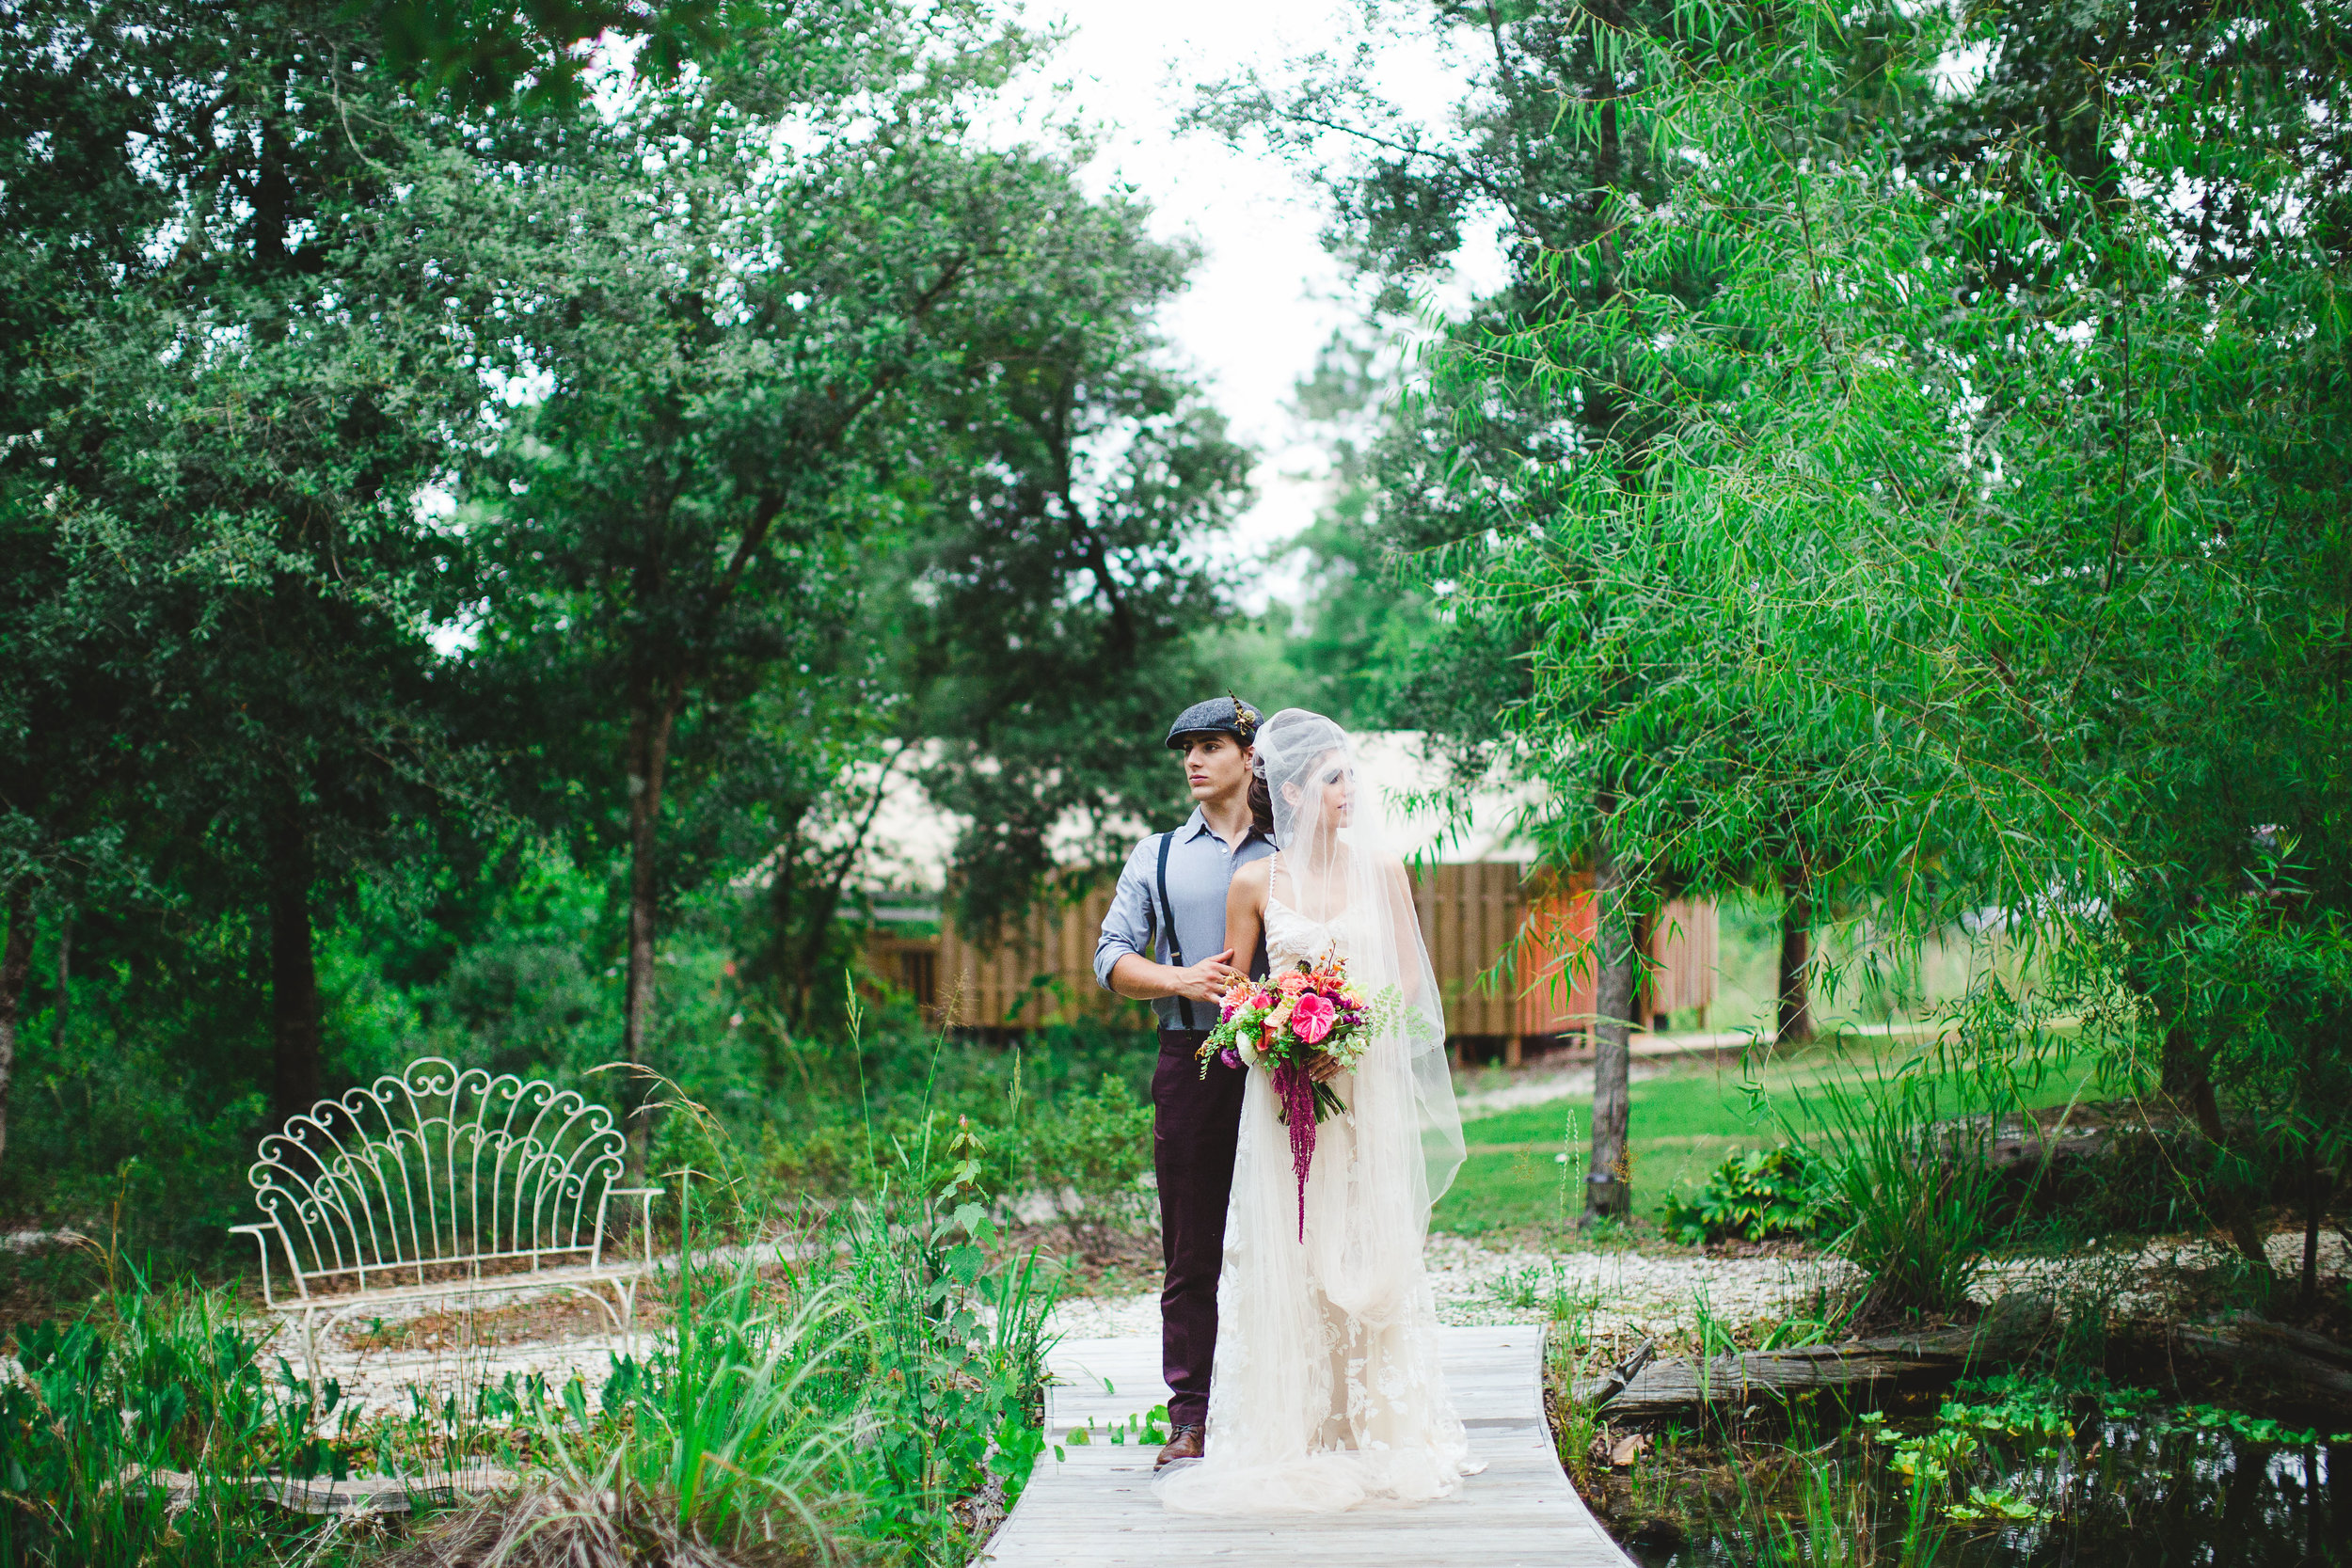 izzy-hudgins-photography-emily-burton-designs-ivory-and-beau-bridal-boutique-daughters-of-simone-sonje-jenny-yoo-bridesmaids-glamping-wedding-boho-wedding-outdoor-wedding-coldwater-gardens-wedding-savannah-bridal-boutique-savannah-wedding-planner-25.jpg